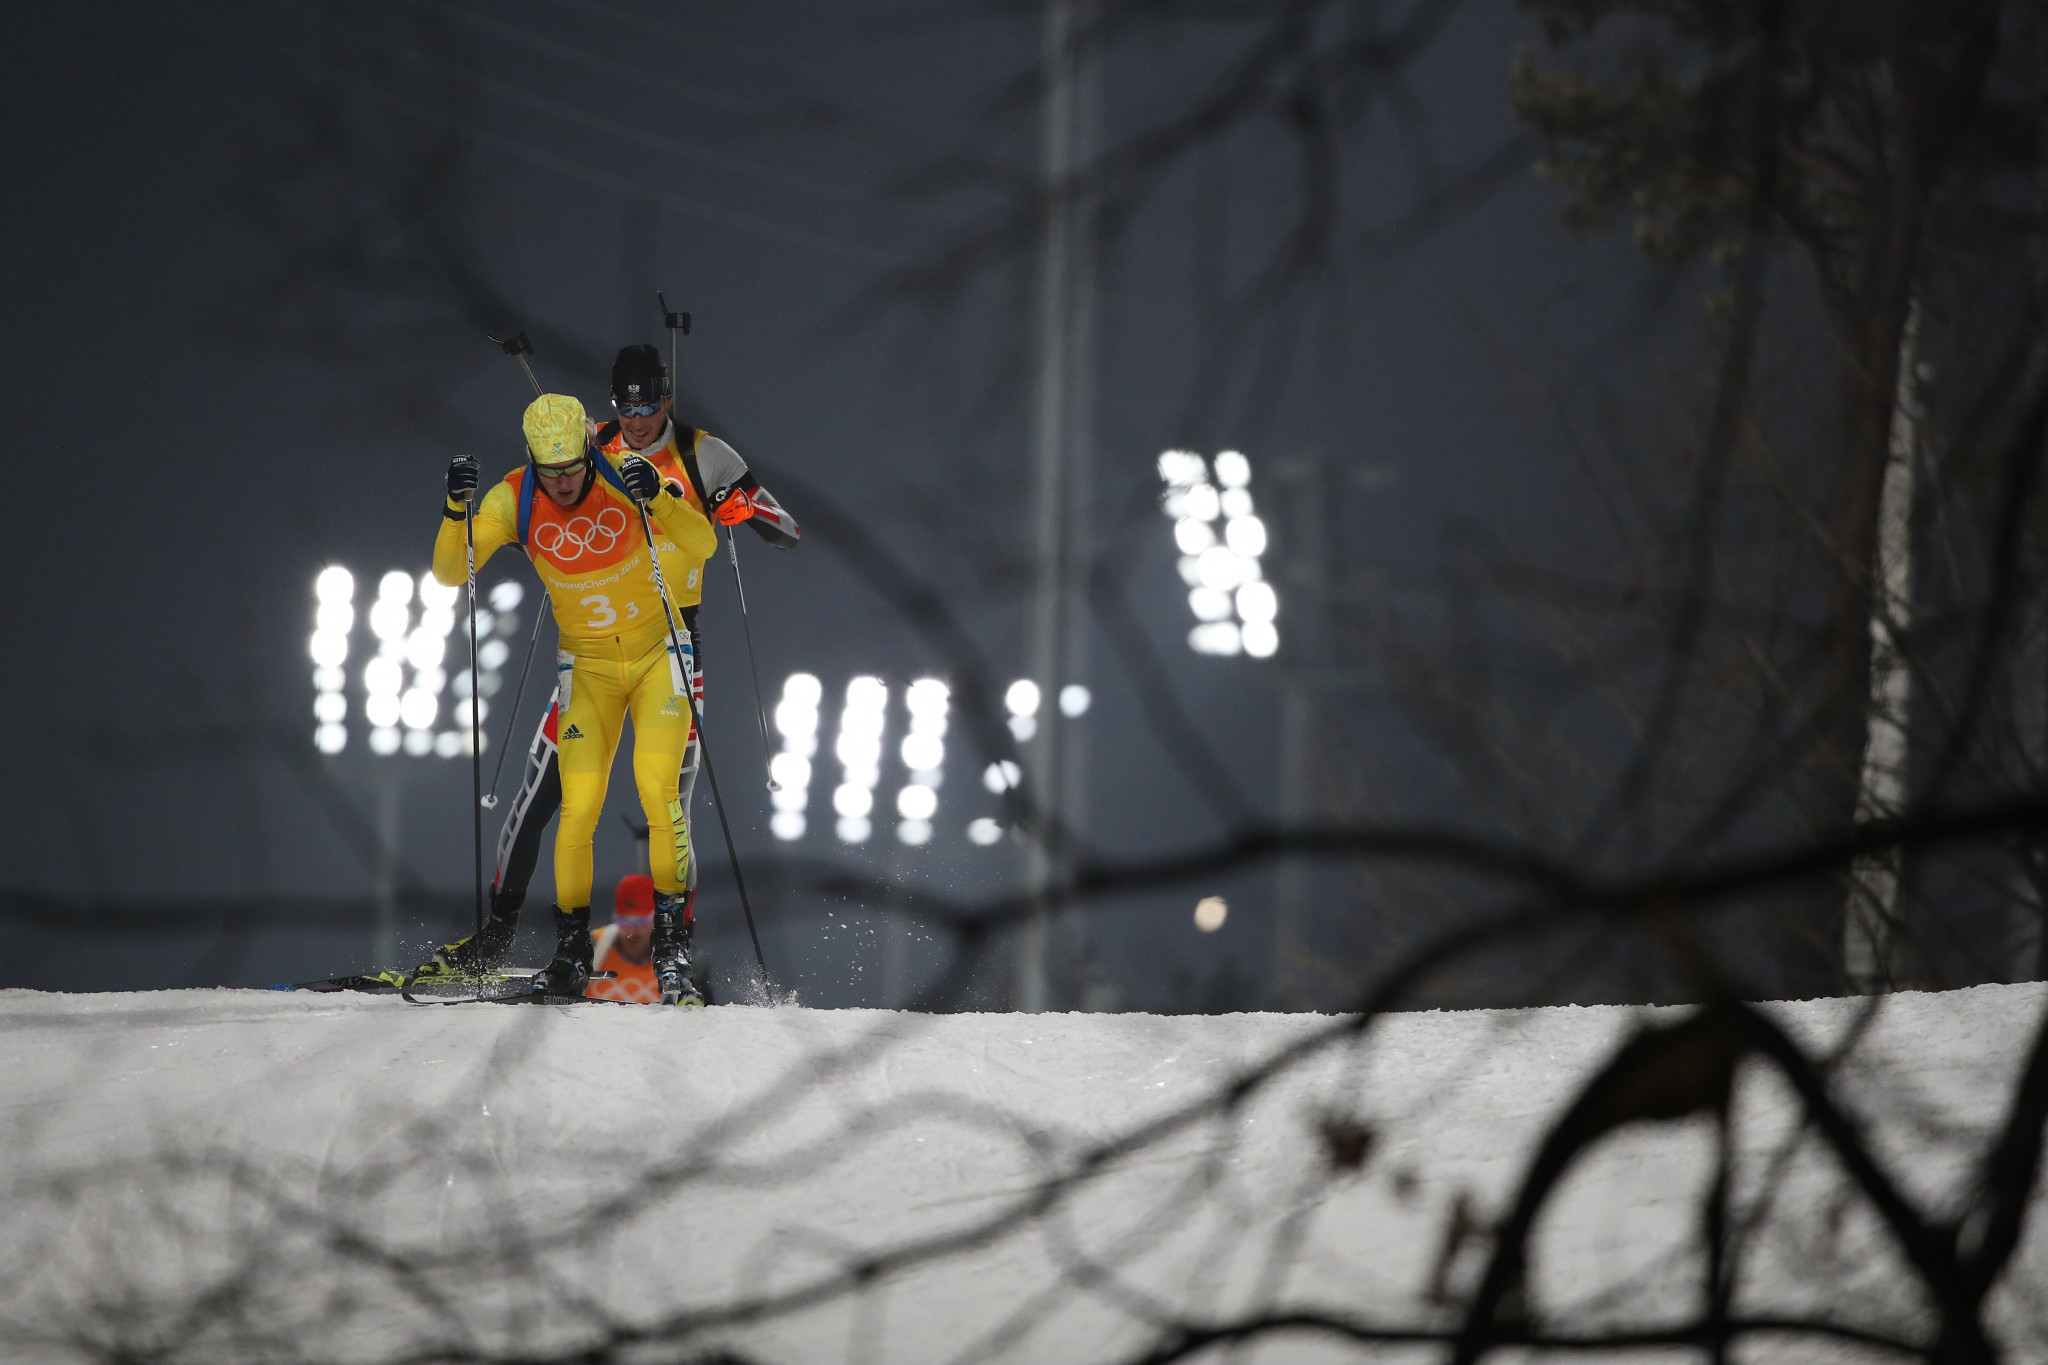 Sebastian Samuelsson of Sweden has been an outspoken critic of the IBU ©Getty Images